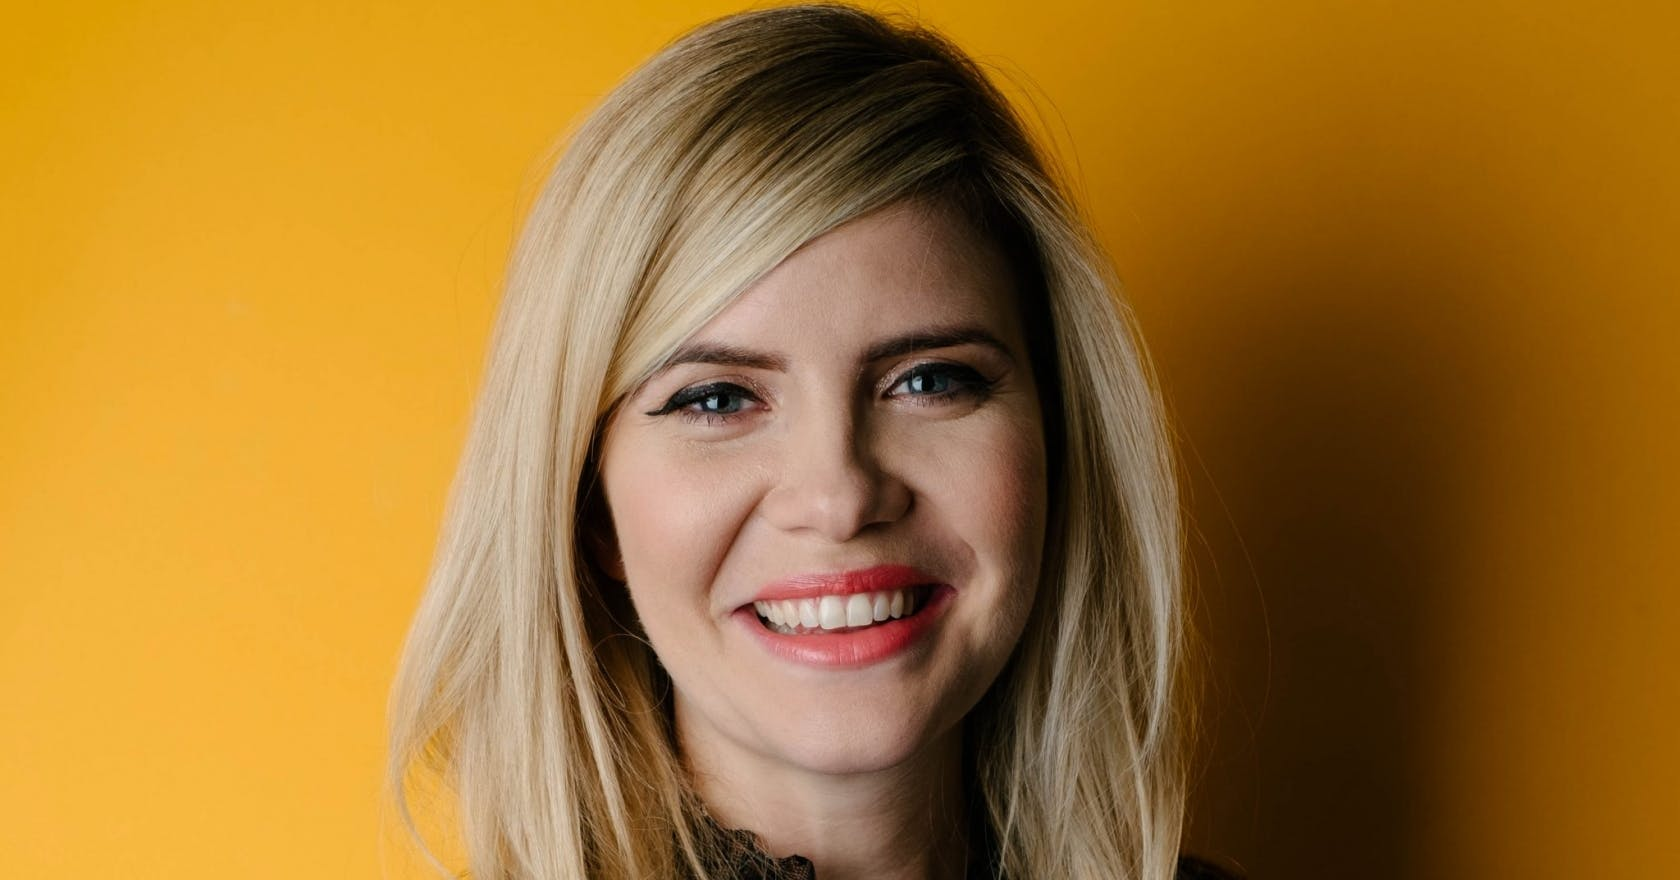 Emma Barnett on politics, daily gripes and finding solace in music